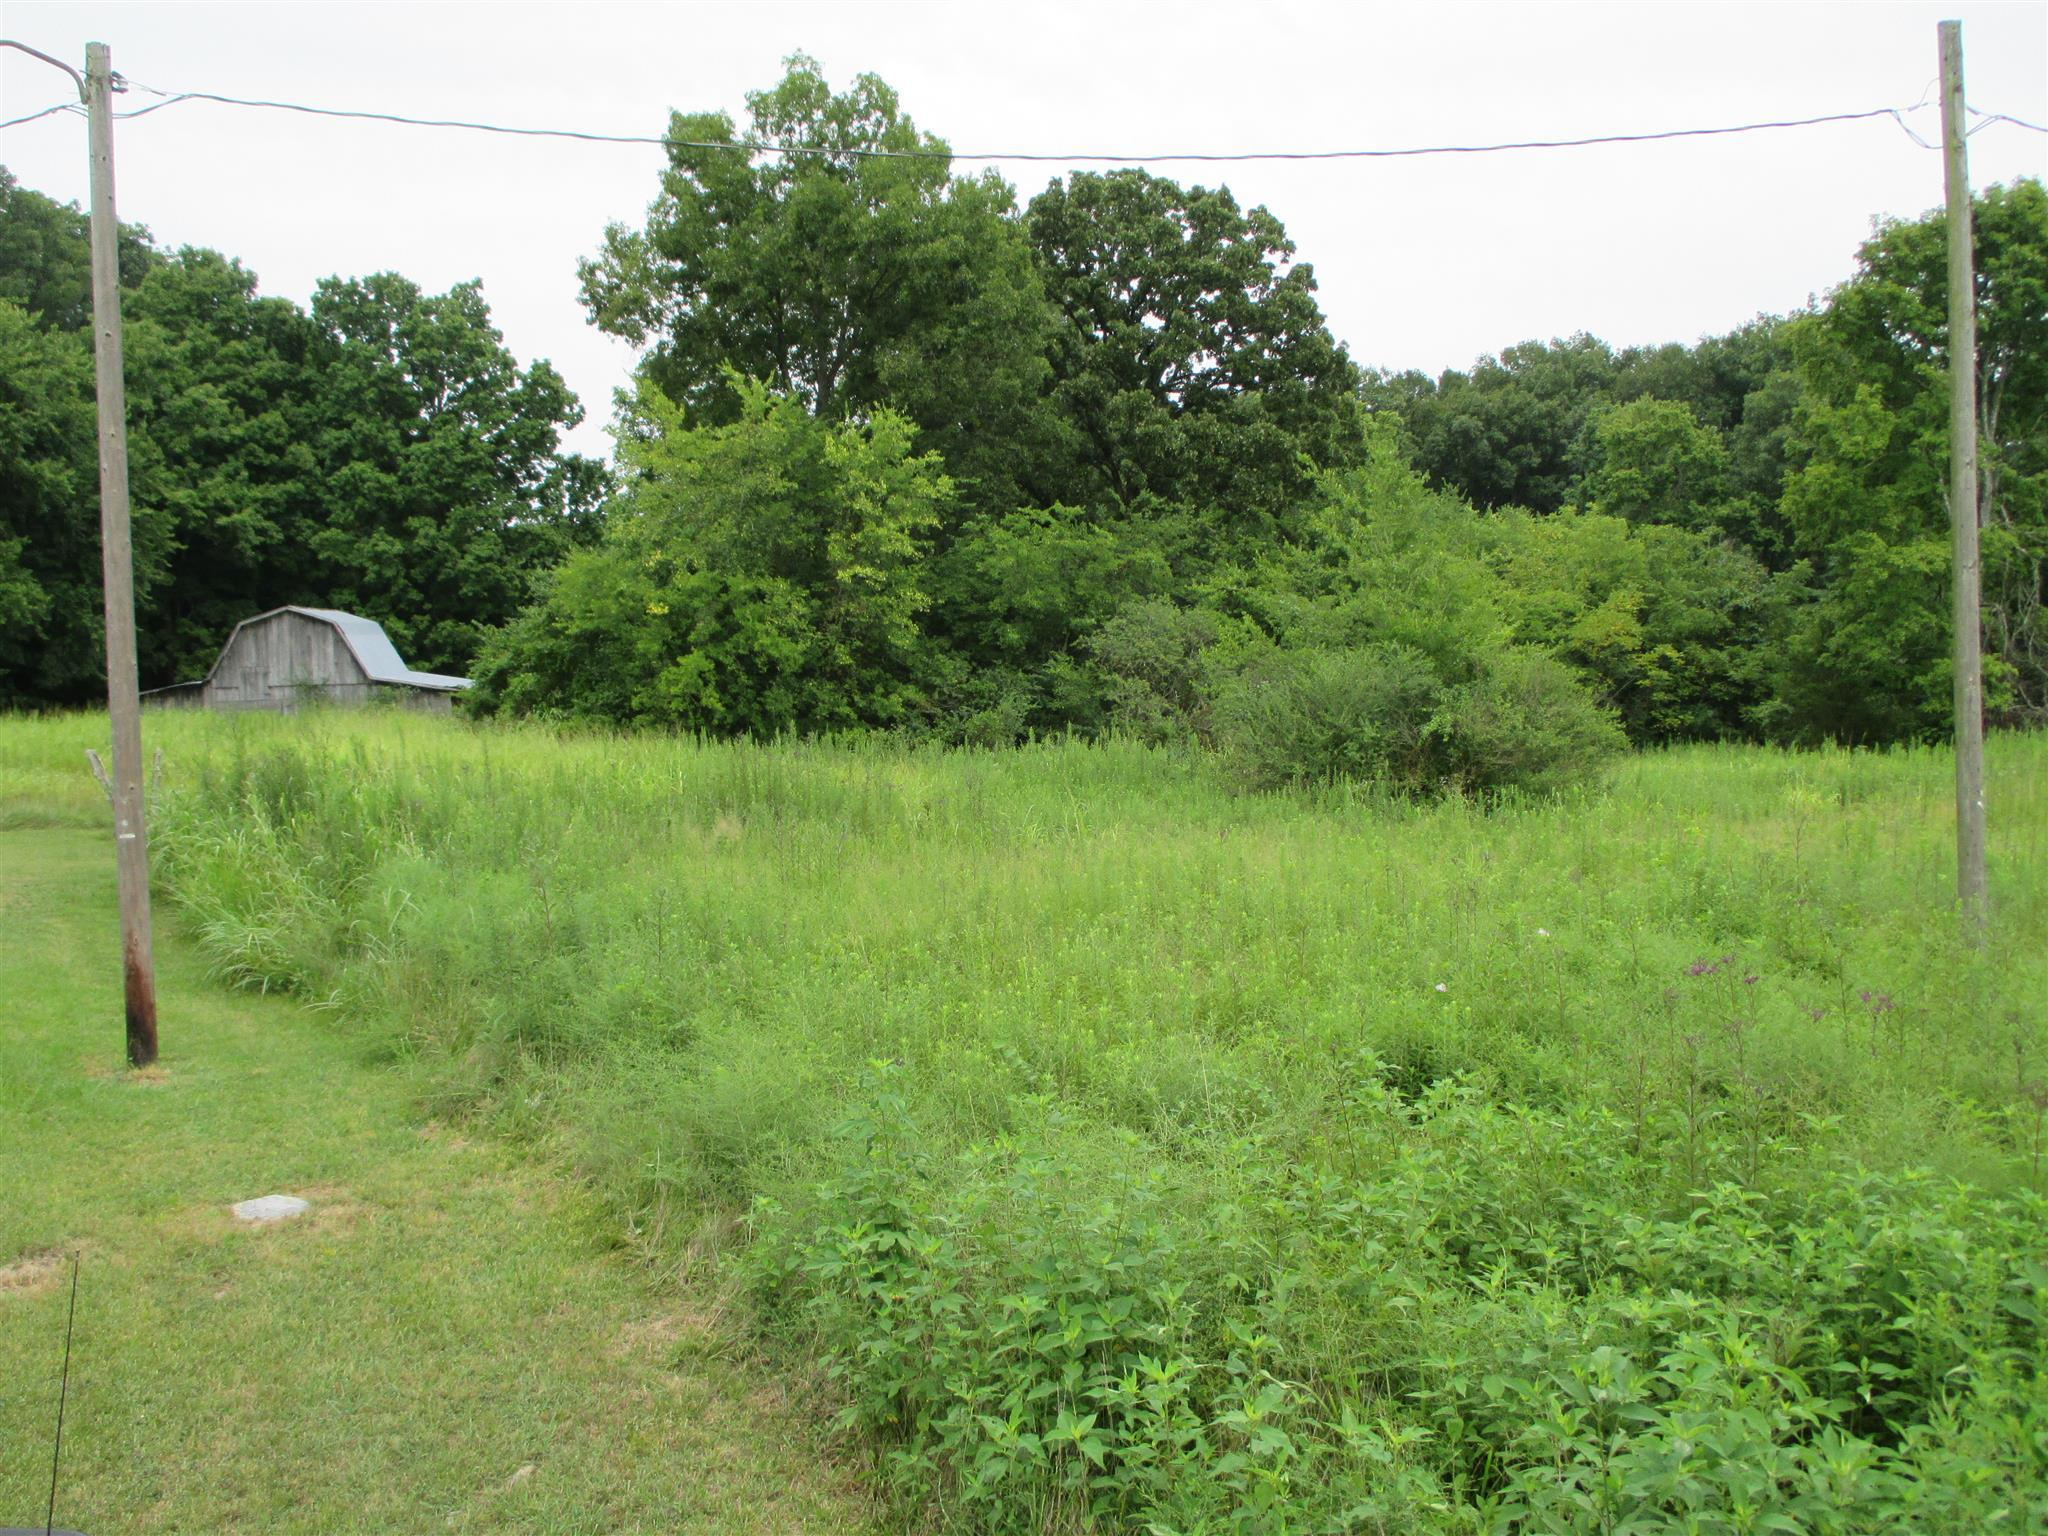 2708 Hwy. 41A North, Shelbyville, TN 37160 - Shelbyville, TN real estate listing